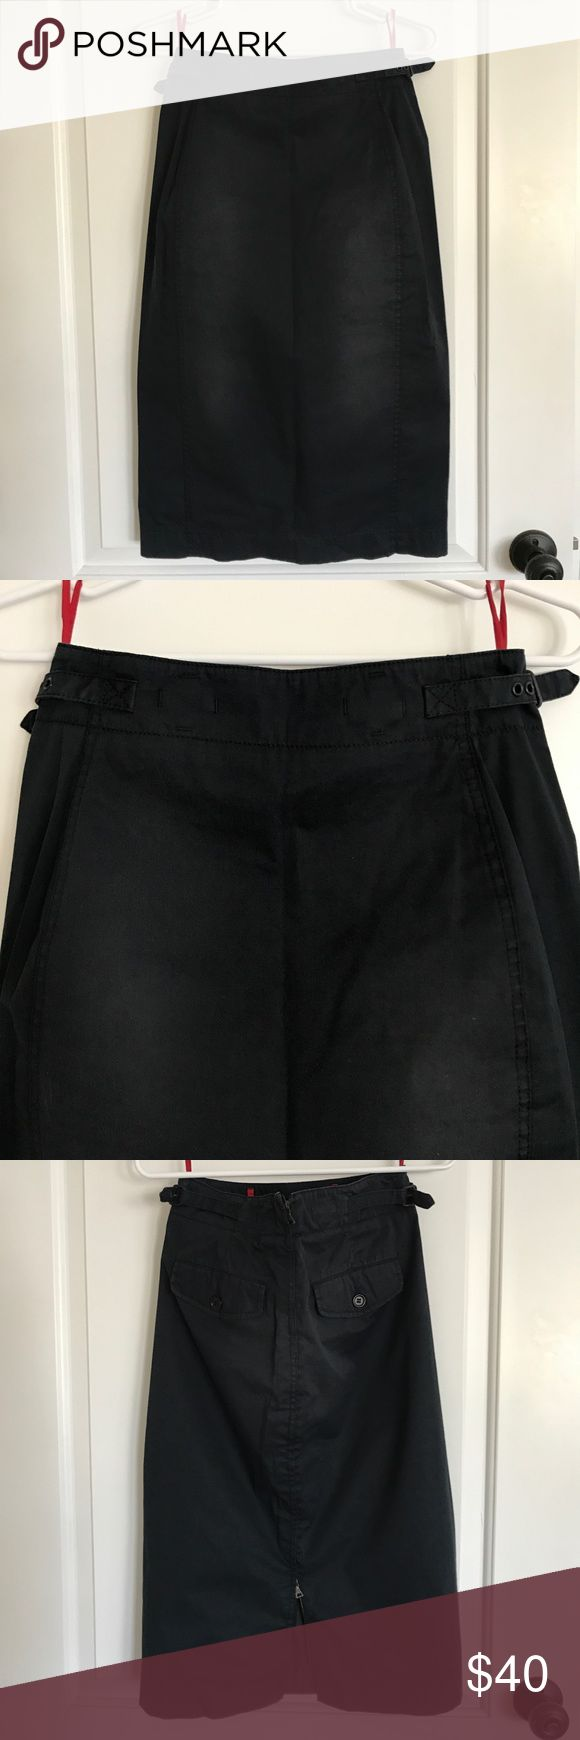 Prada Sport pencil skirt Vintage Prada Sport pencil skirt in distressed cotton.  Back zip closure and side waist belt buckle detailing.  Skirt is lined.  Back pockets.  In faded black color.  Size 40 and runs a little small.  Pre owned.  In great condition. Prada Skirts Pencil